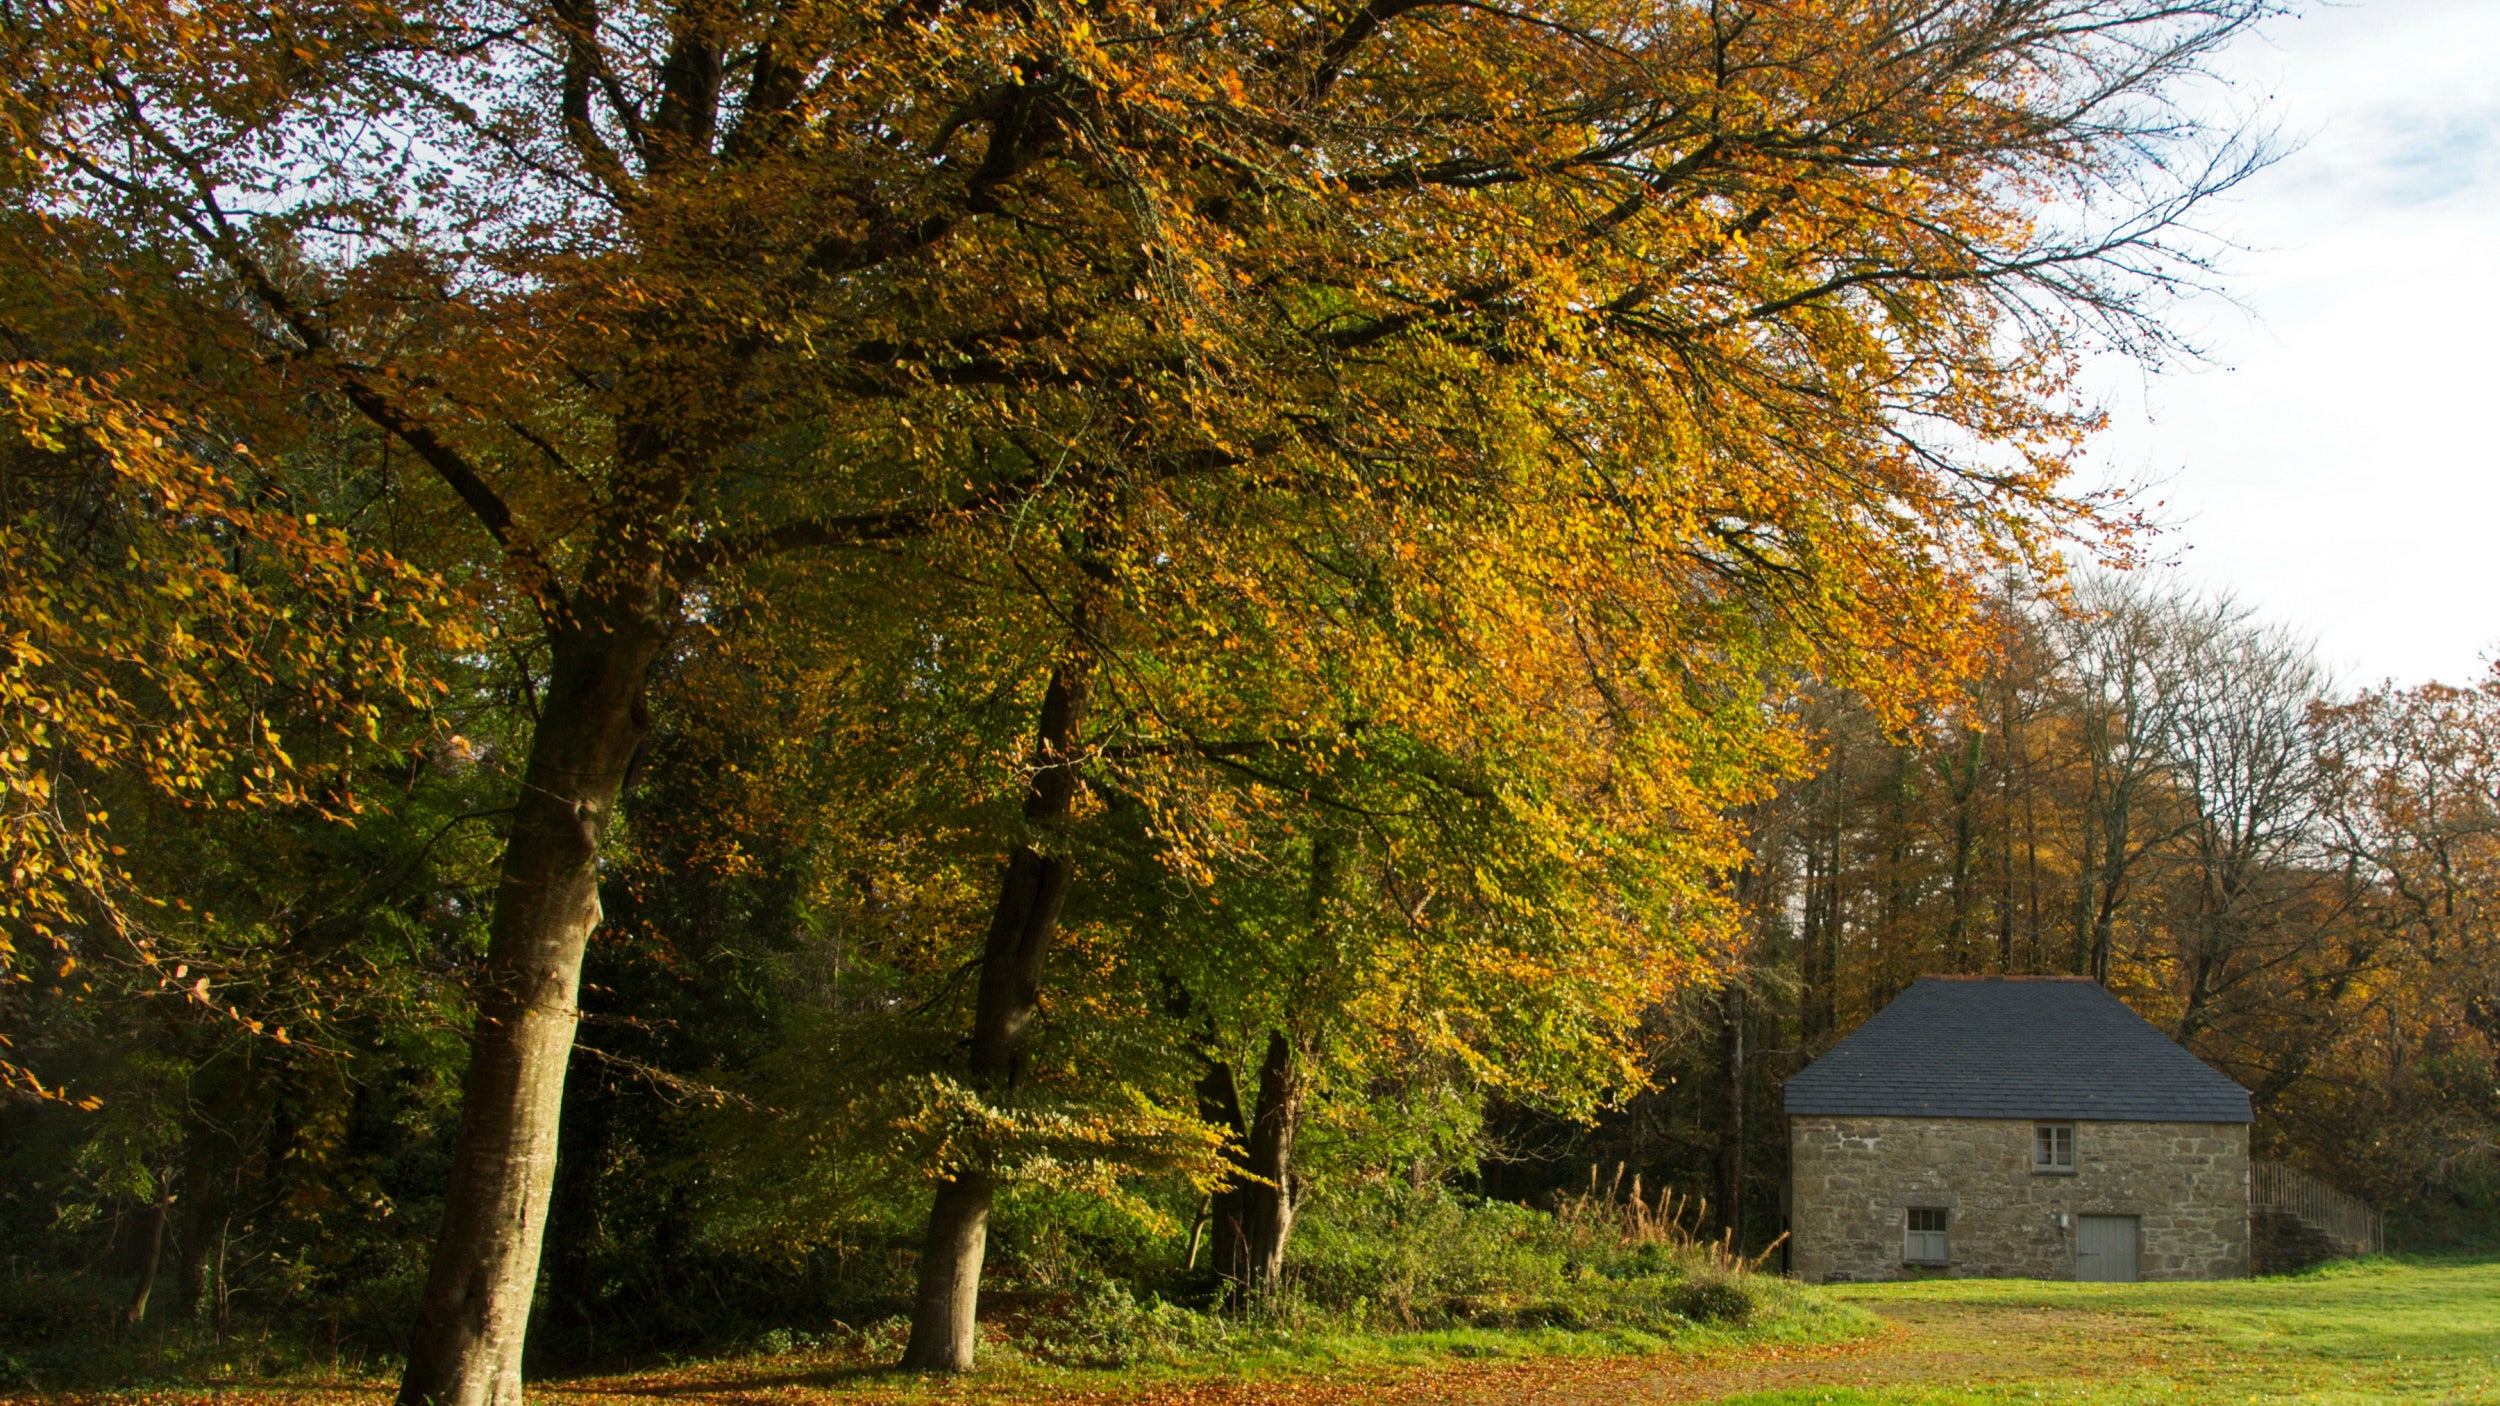 Autumn colour at Godolphin